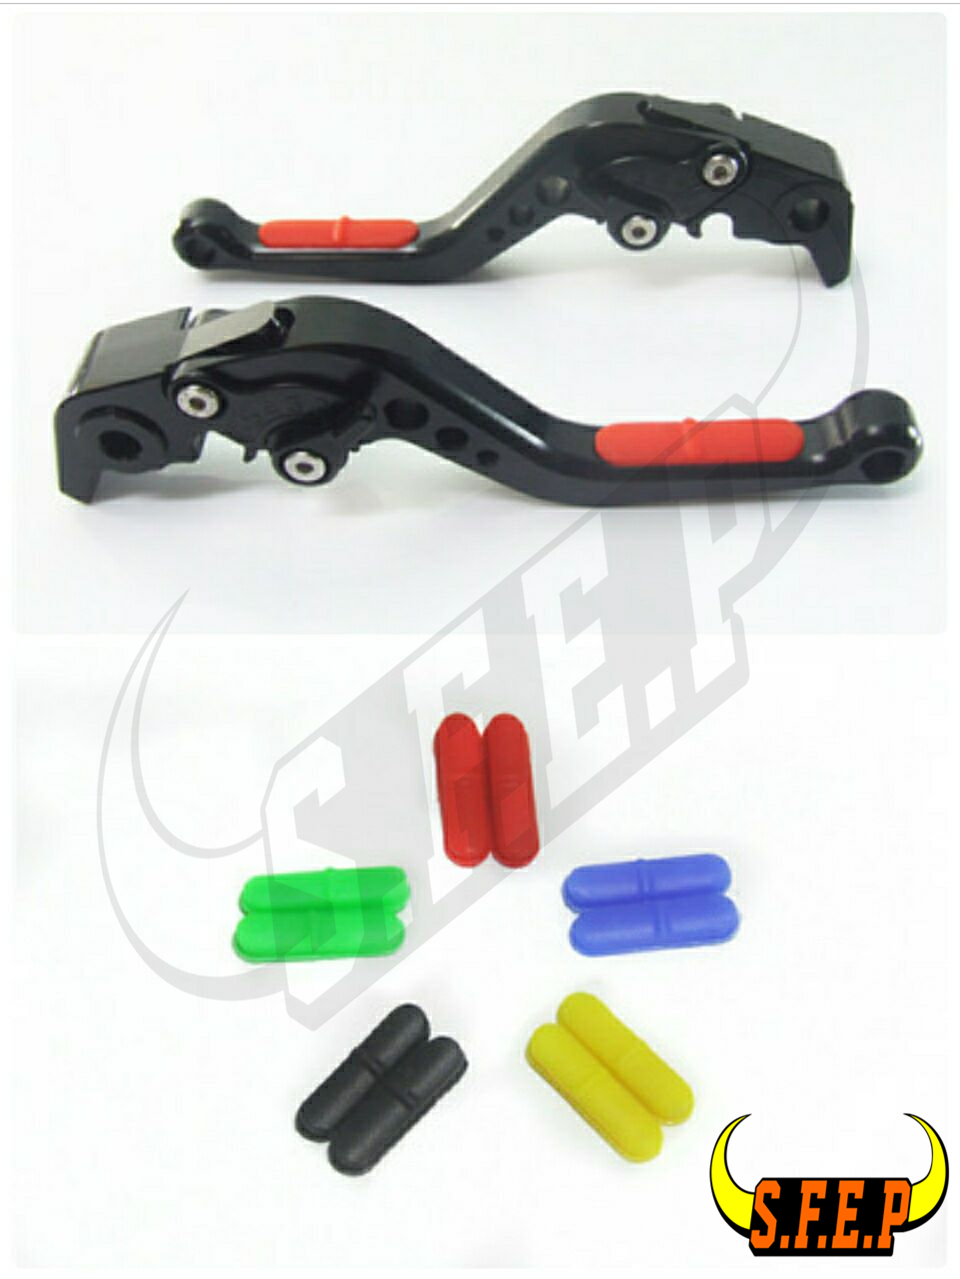 CNC Adjustable Motorcycle Brake and Clutch Levers with Anti-Slip For Kawasaki Z750R 2011-2012 2016 motorcycle mixed colors adjustable lever regular cnc dual color brake clutch levers for kawasaki z1000 z750r 2011 2012